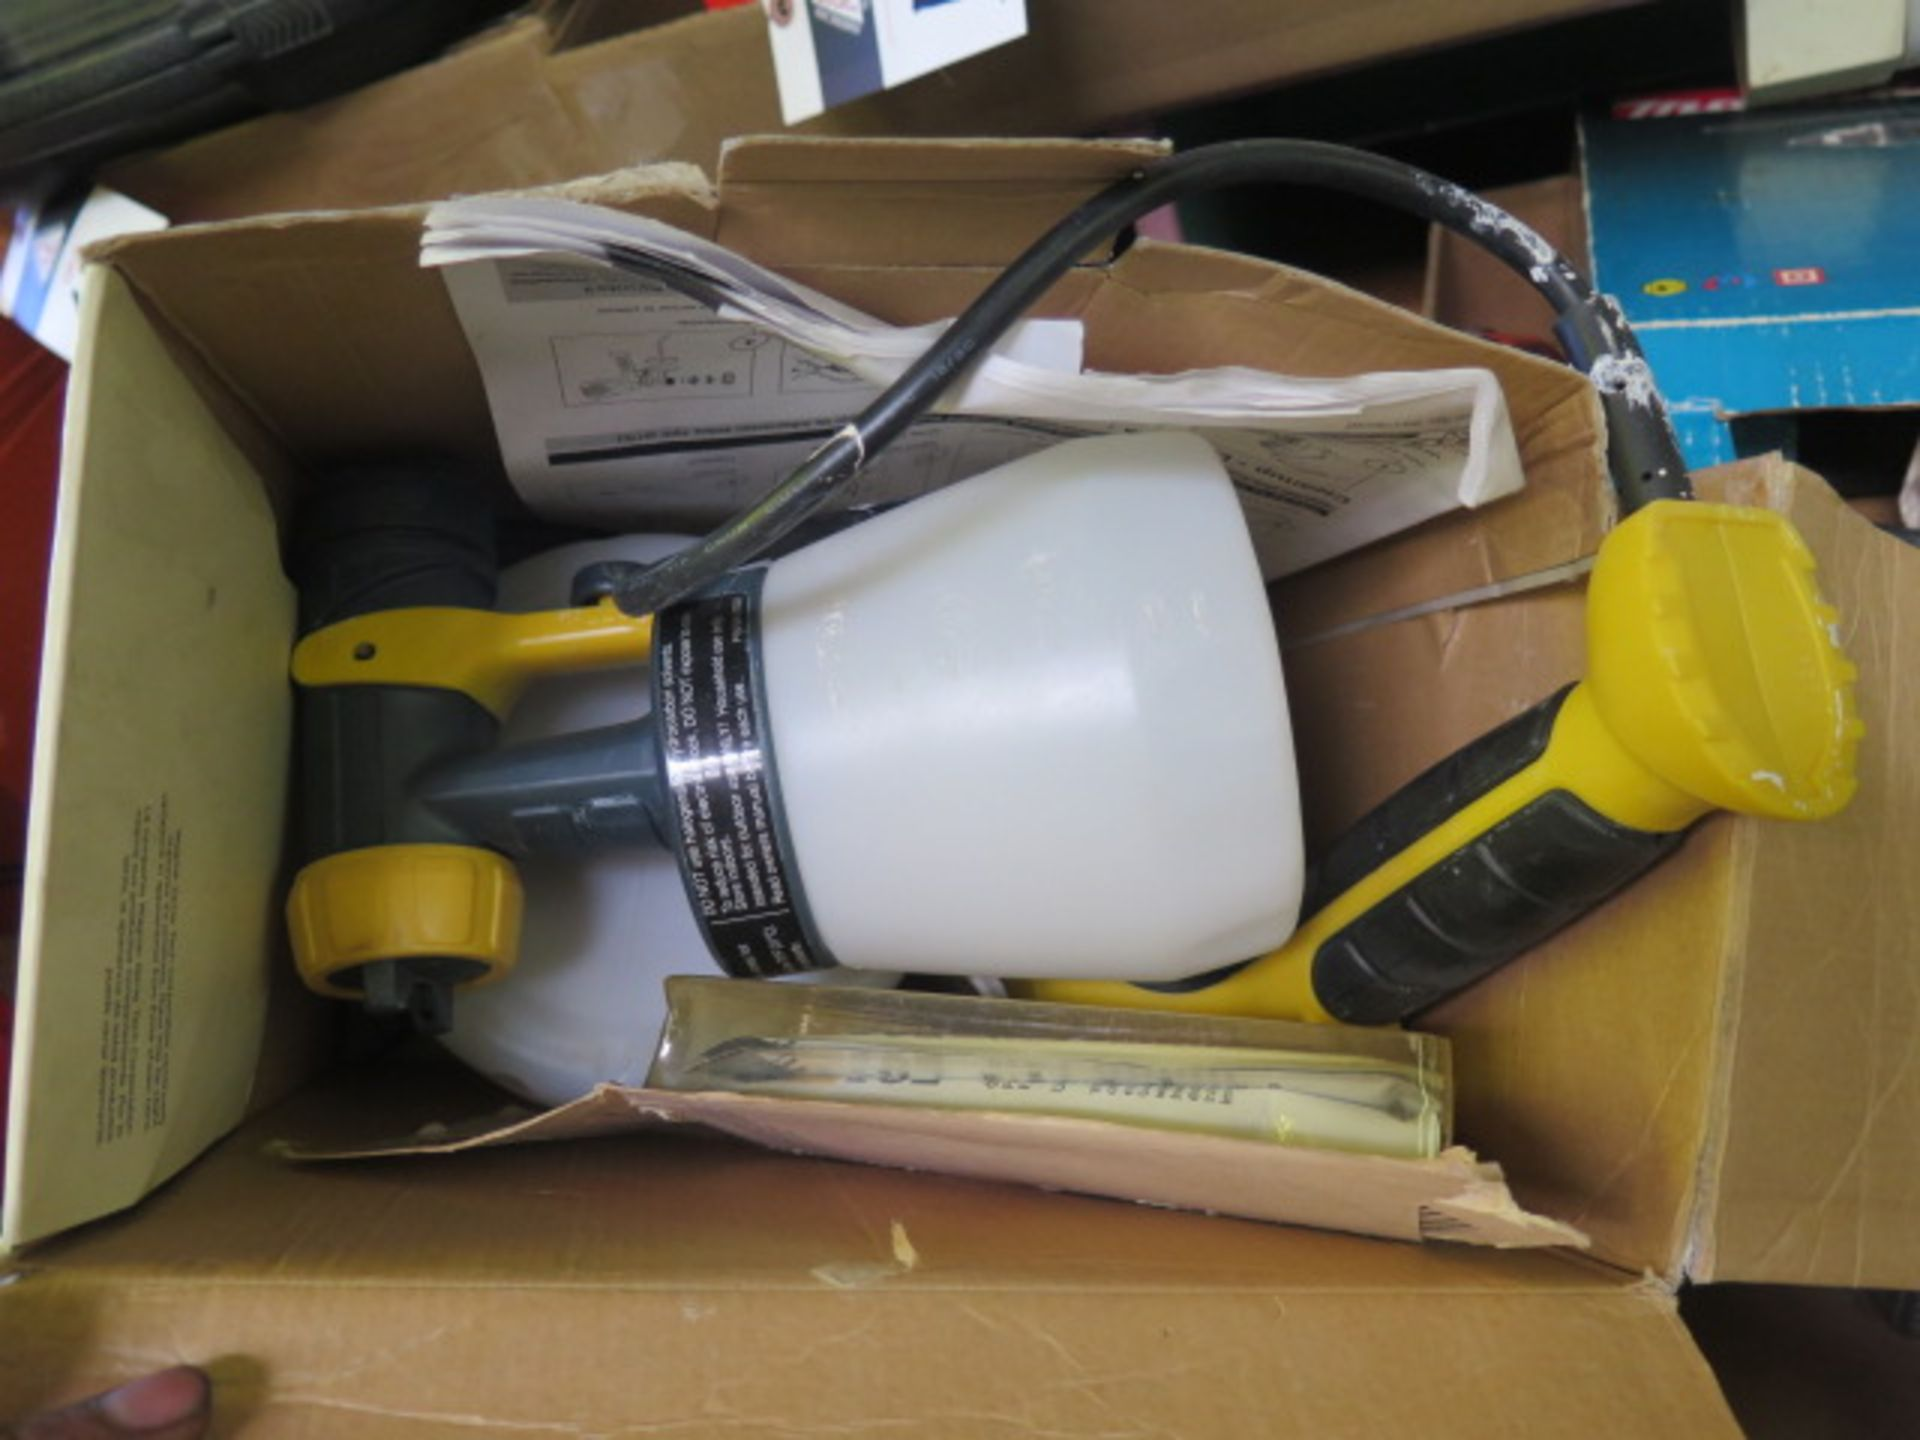 Lot 14 - Wagner Electric Power Painters (2) (SOLD AS-IS - NO WARRANTY)